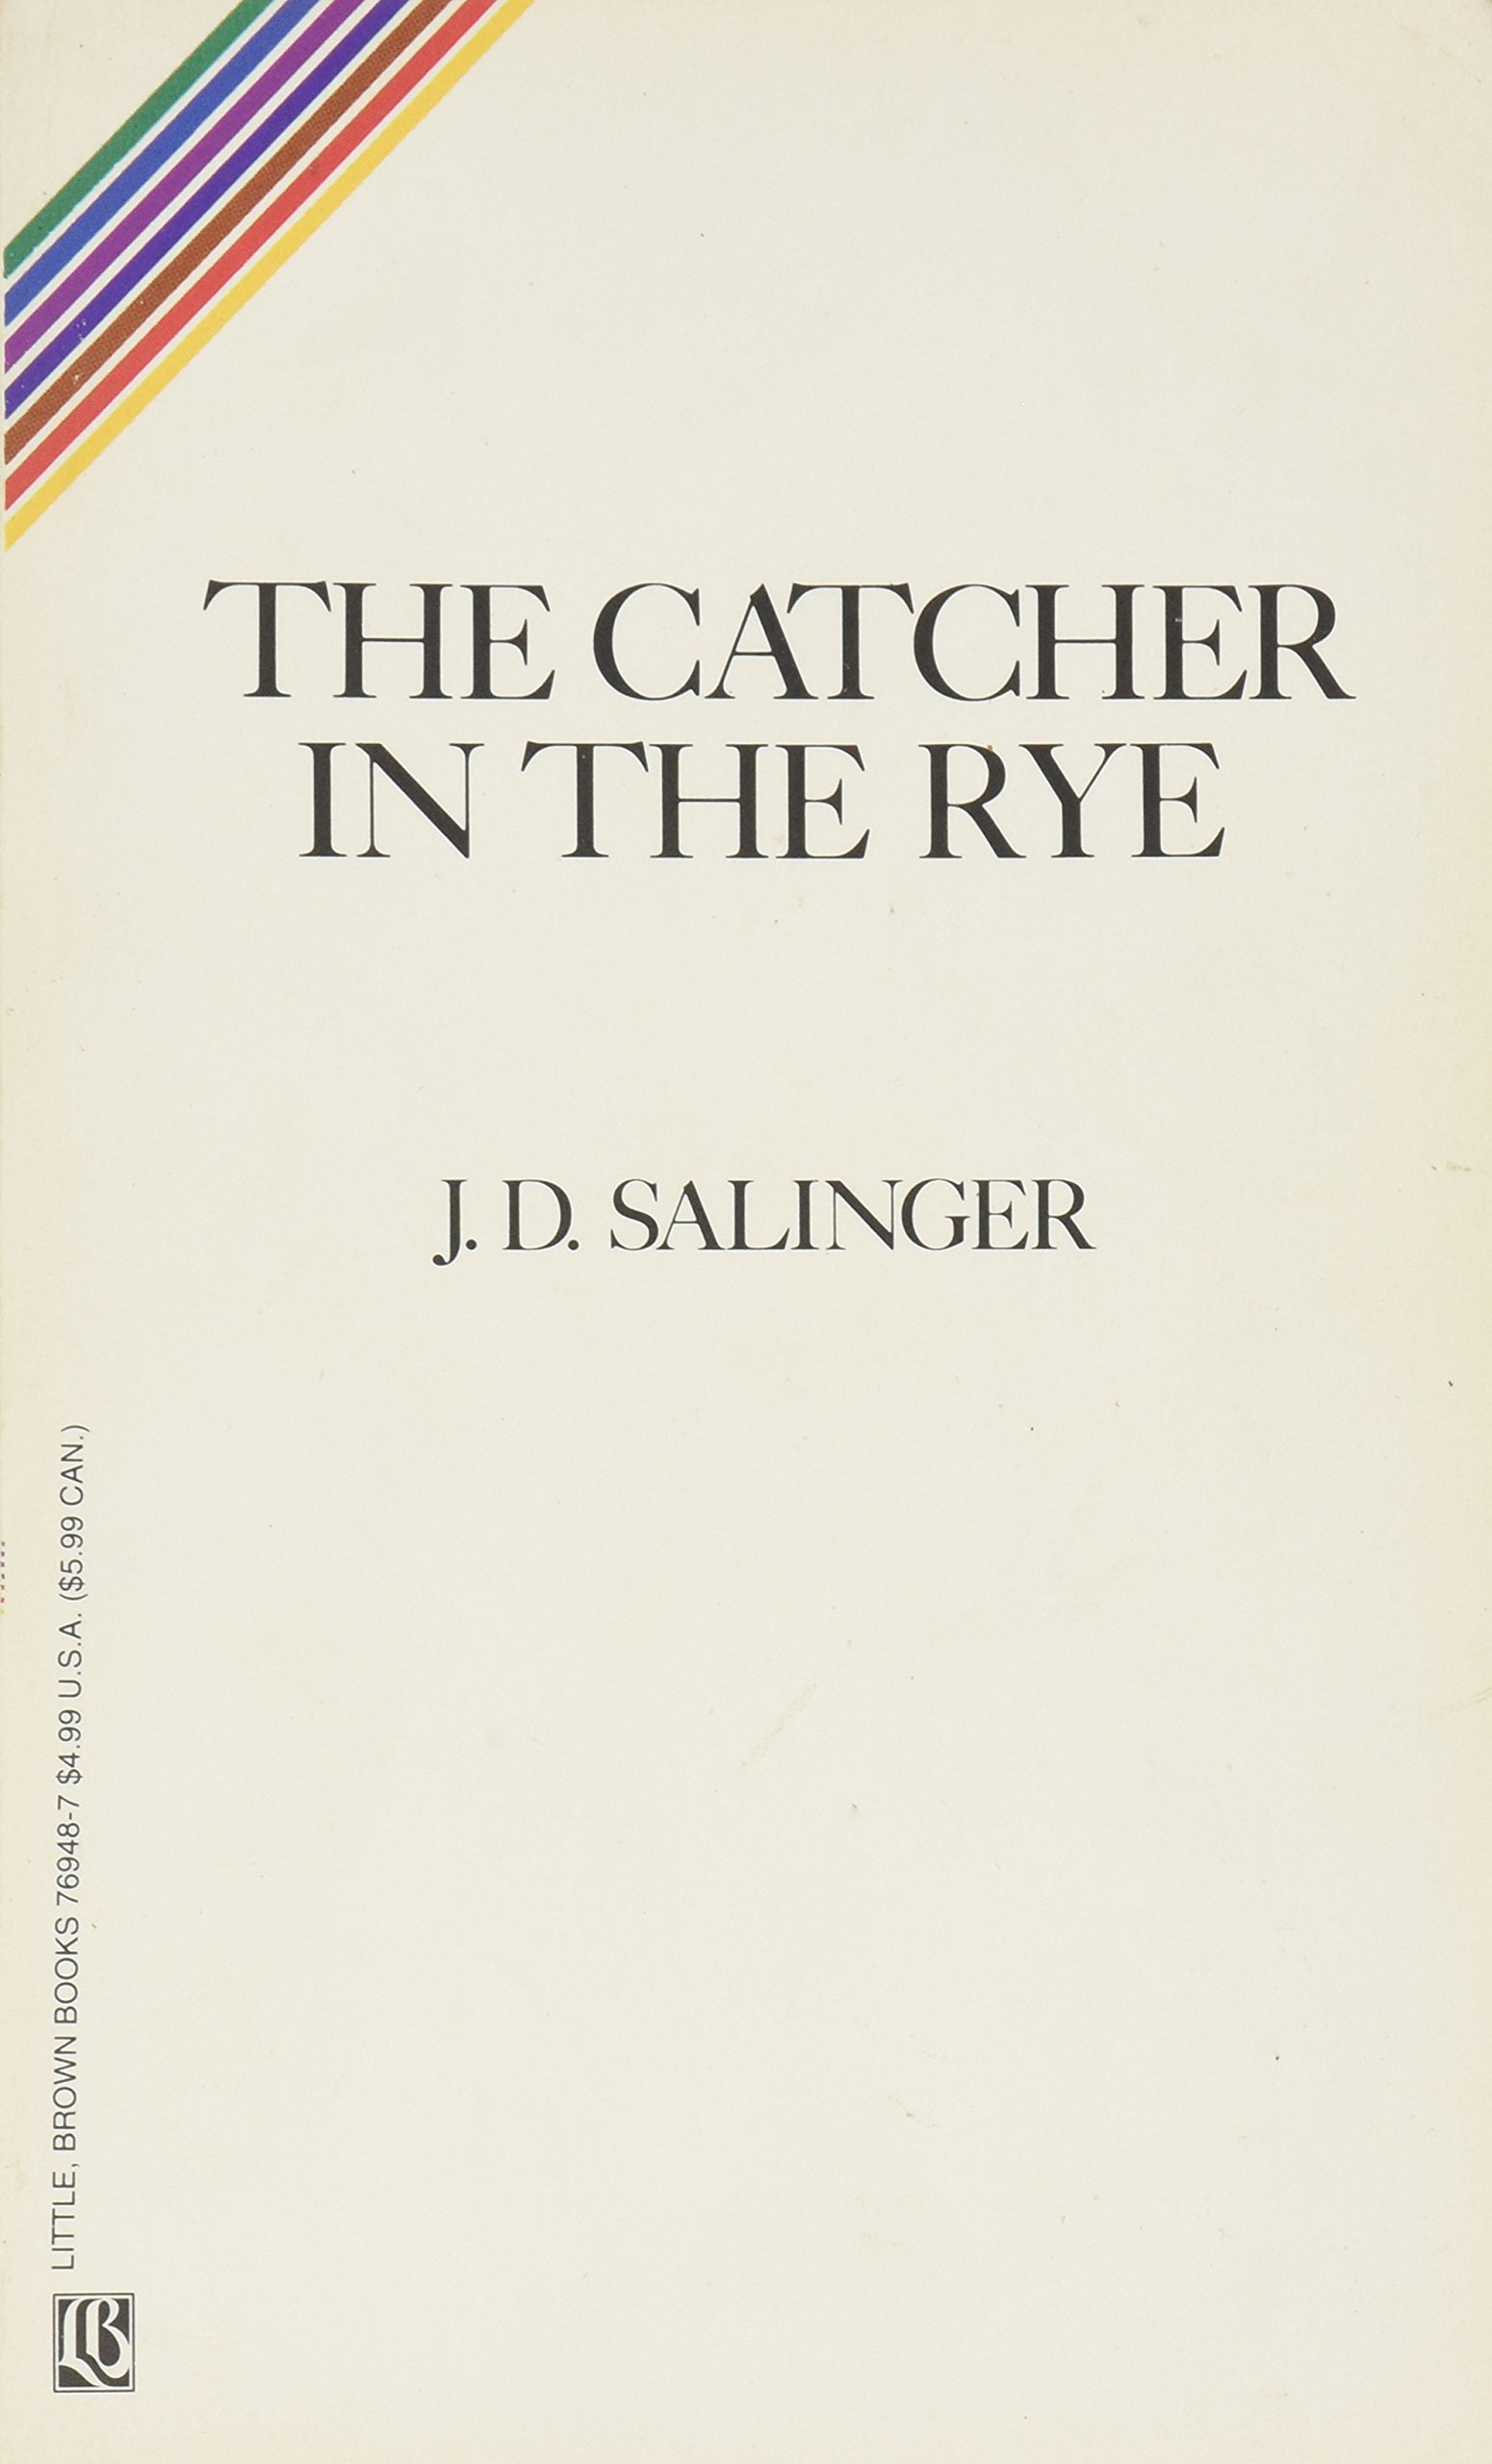 Bilderesultat for the catcher in the rye amazon